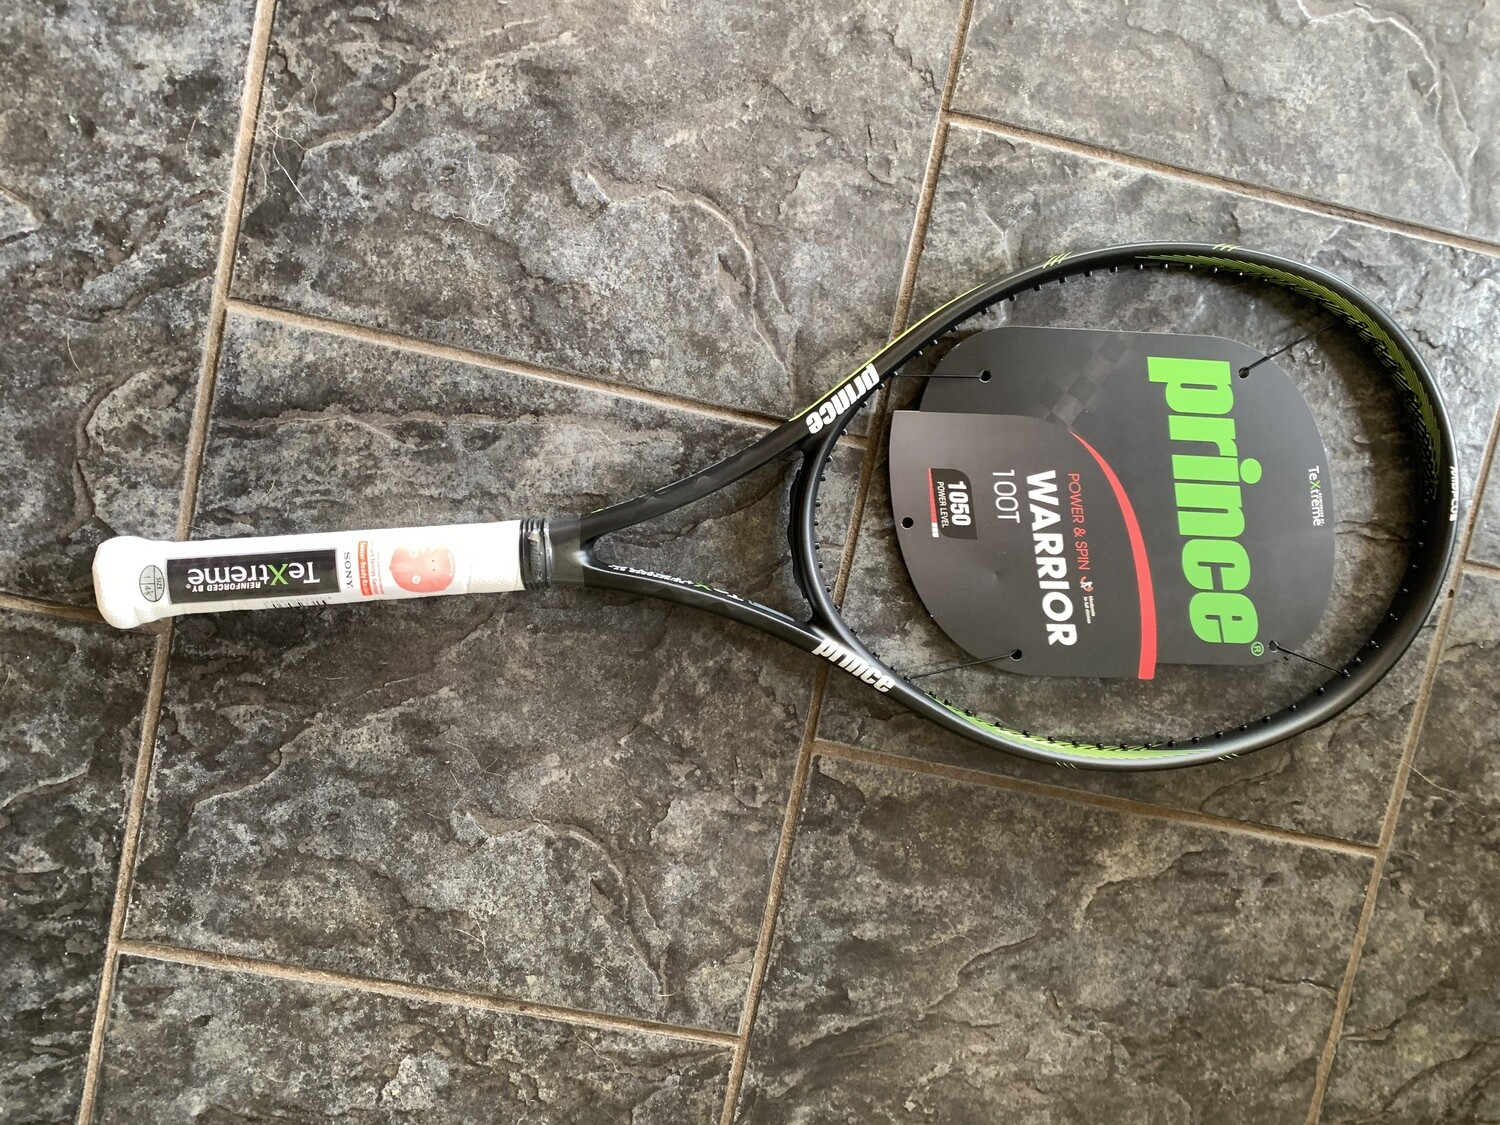 Prince Warrior Textreme 100T LE (Limited Edition) 275g